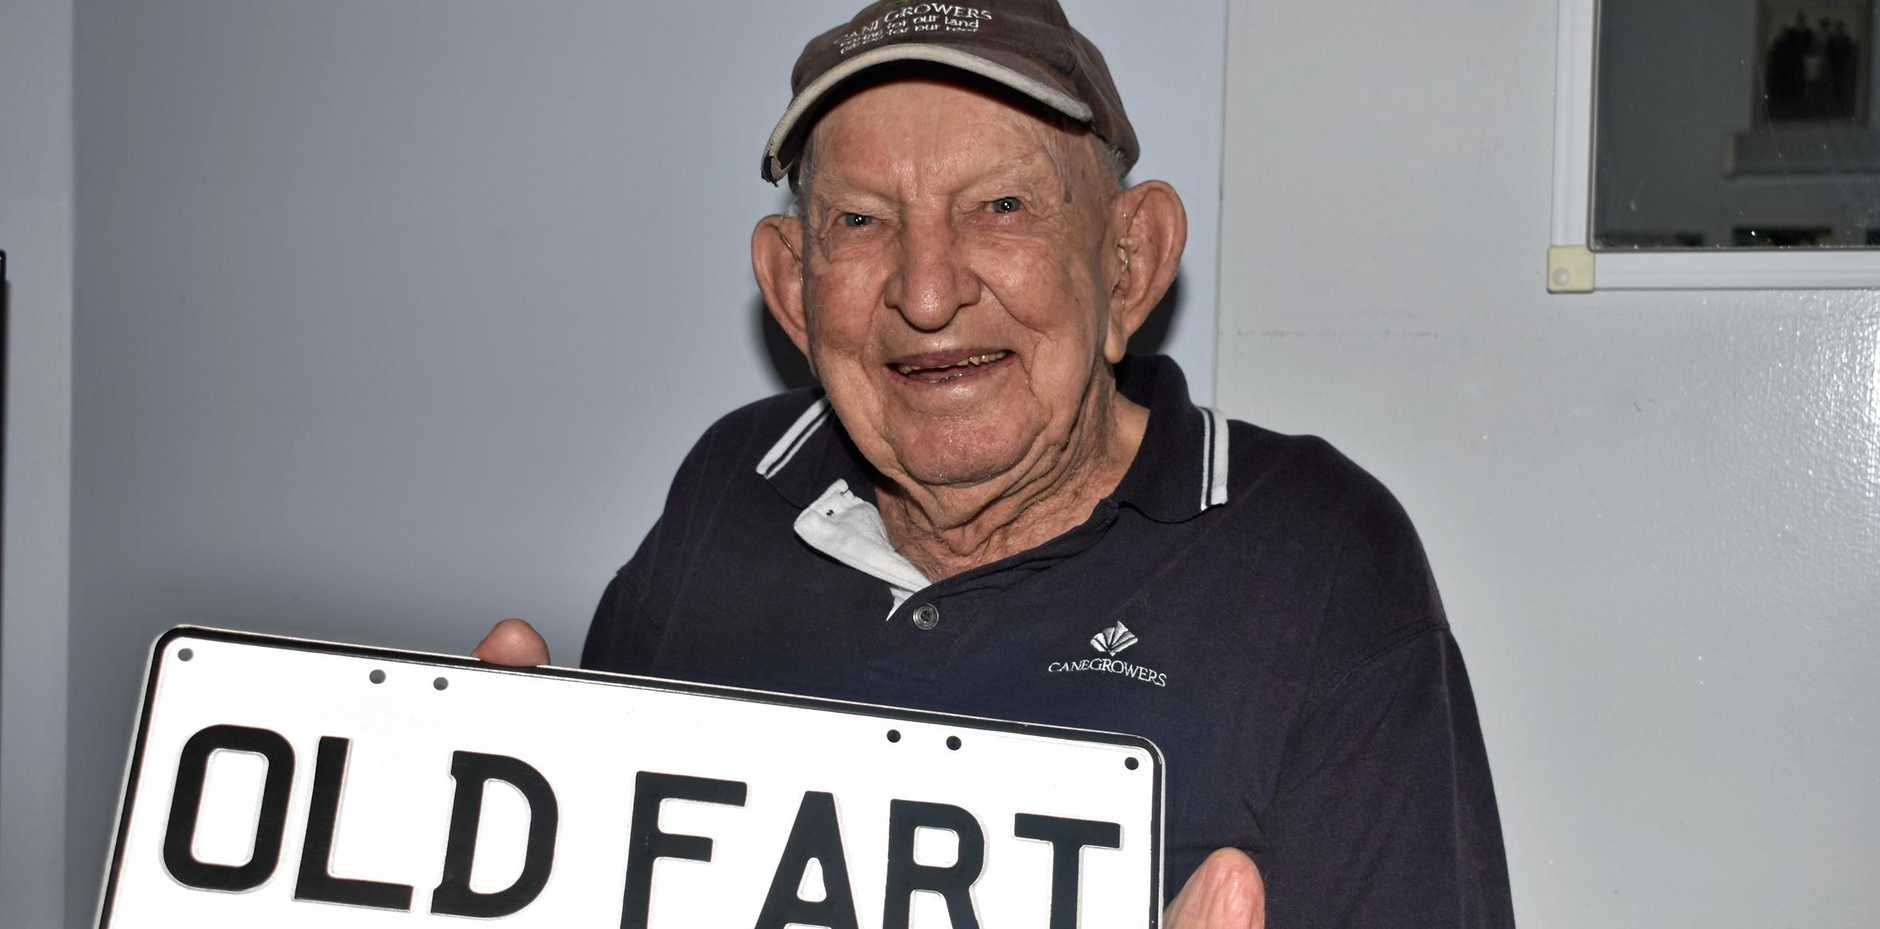 OLD FART: Kevin Mischke spreads joy and laughter at Tabeel Aged Care in Laidley.